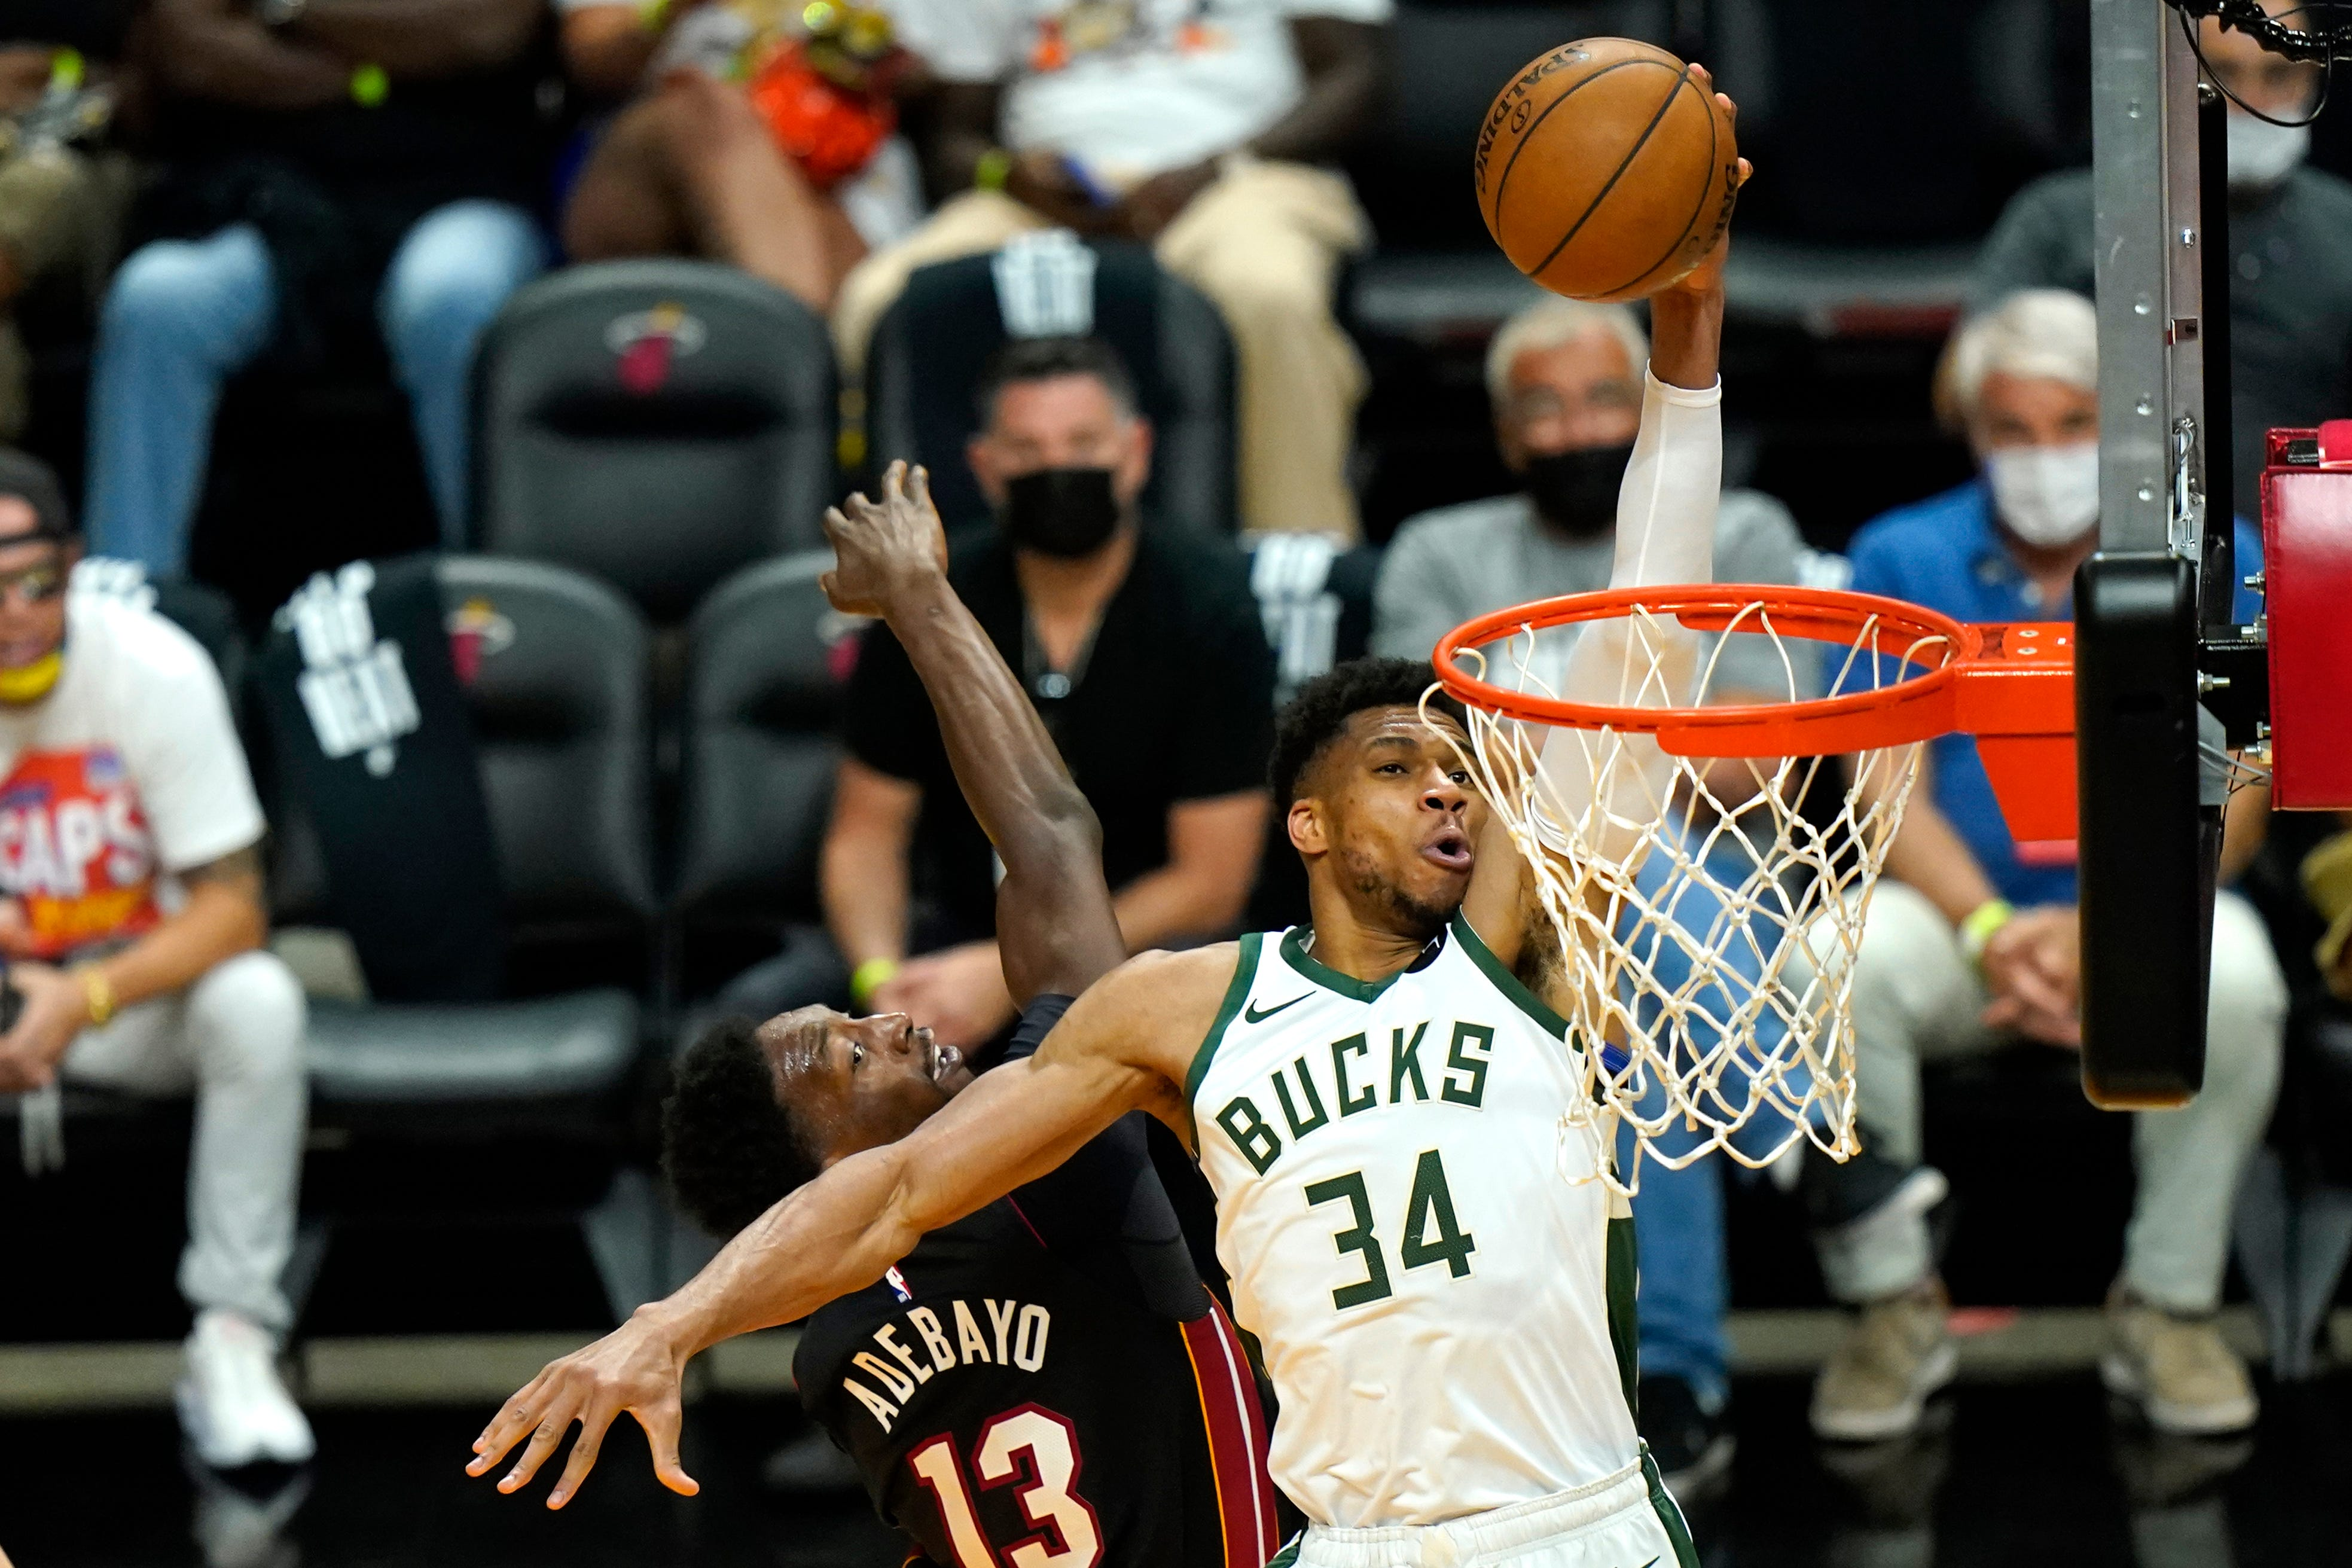 The Milwaukee Bucks have burst the bubble and are peaking at the right time